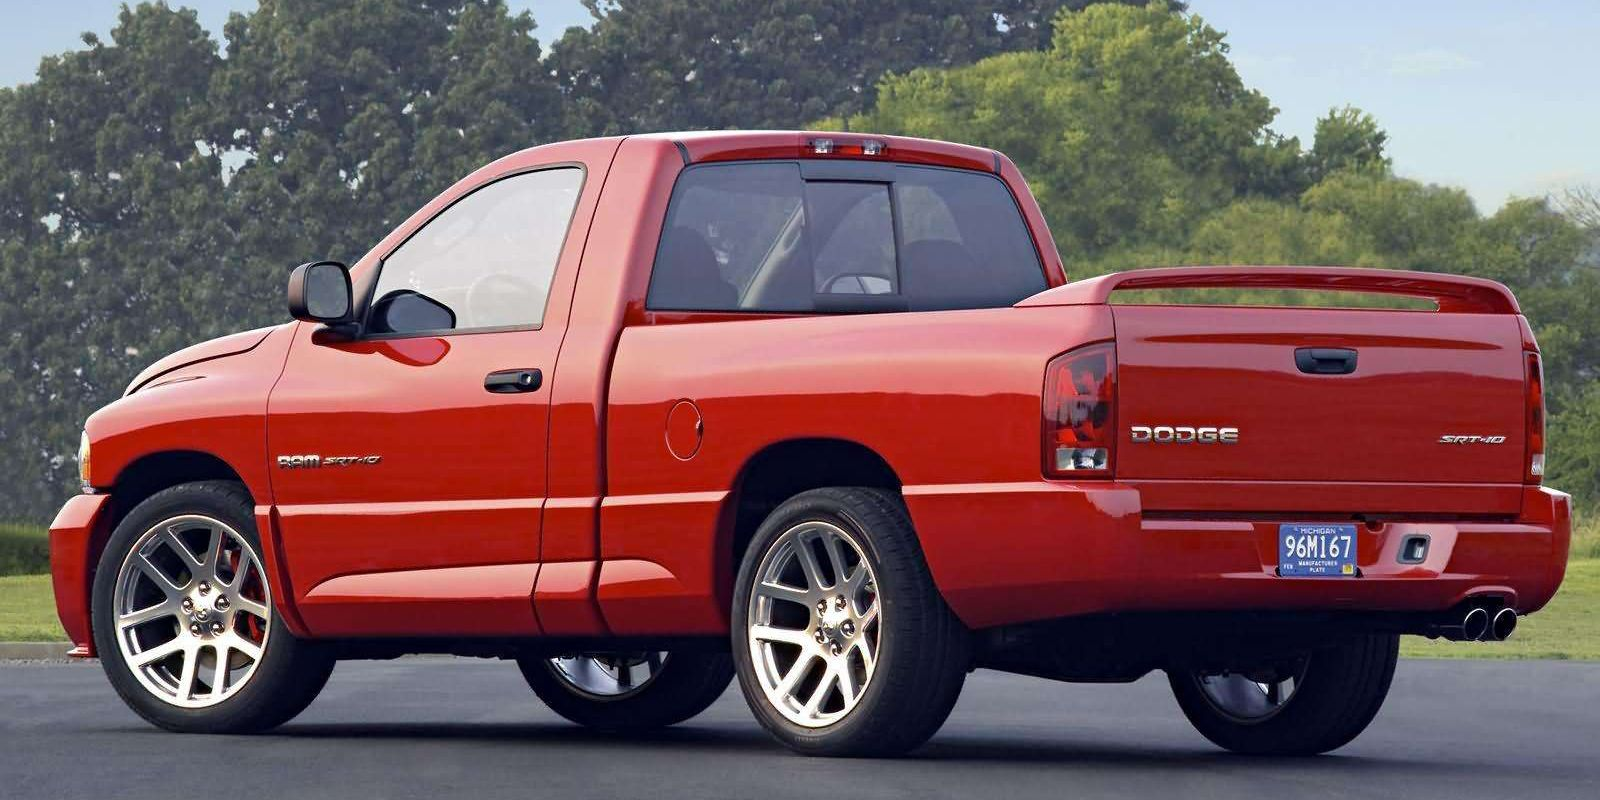 "<p>This was the Viper-powered truck we all remember fondly. It could achieve <a href=""http://www.caranddriver.com/reviews/2004-dodge-ram-srt-10-road-test-a-jackhammer-page-2"">0-60 in just 4.9 seconds</a>, sounding like a very angry UPS truck and roasting those rear tires in the process.</p>"